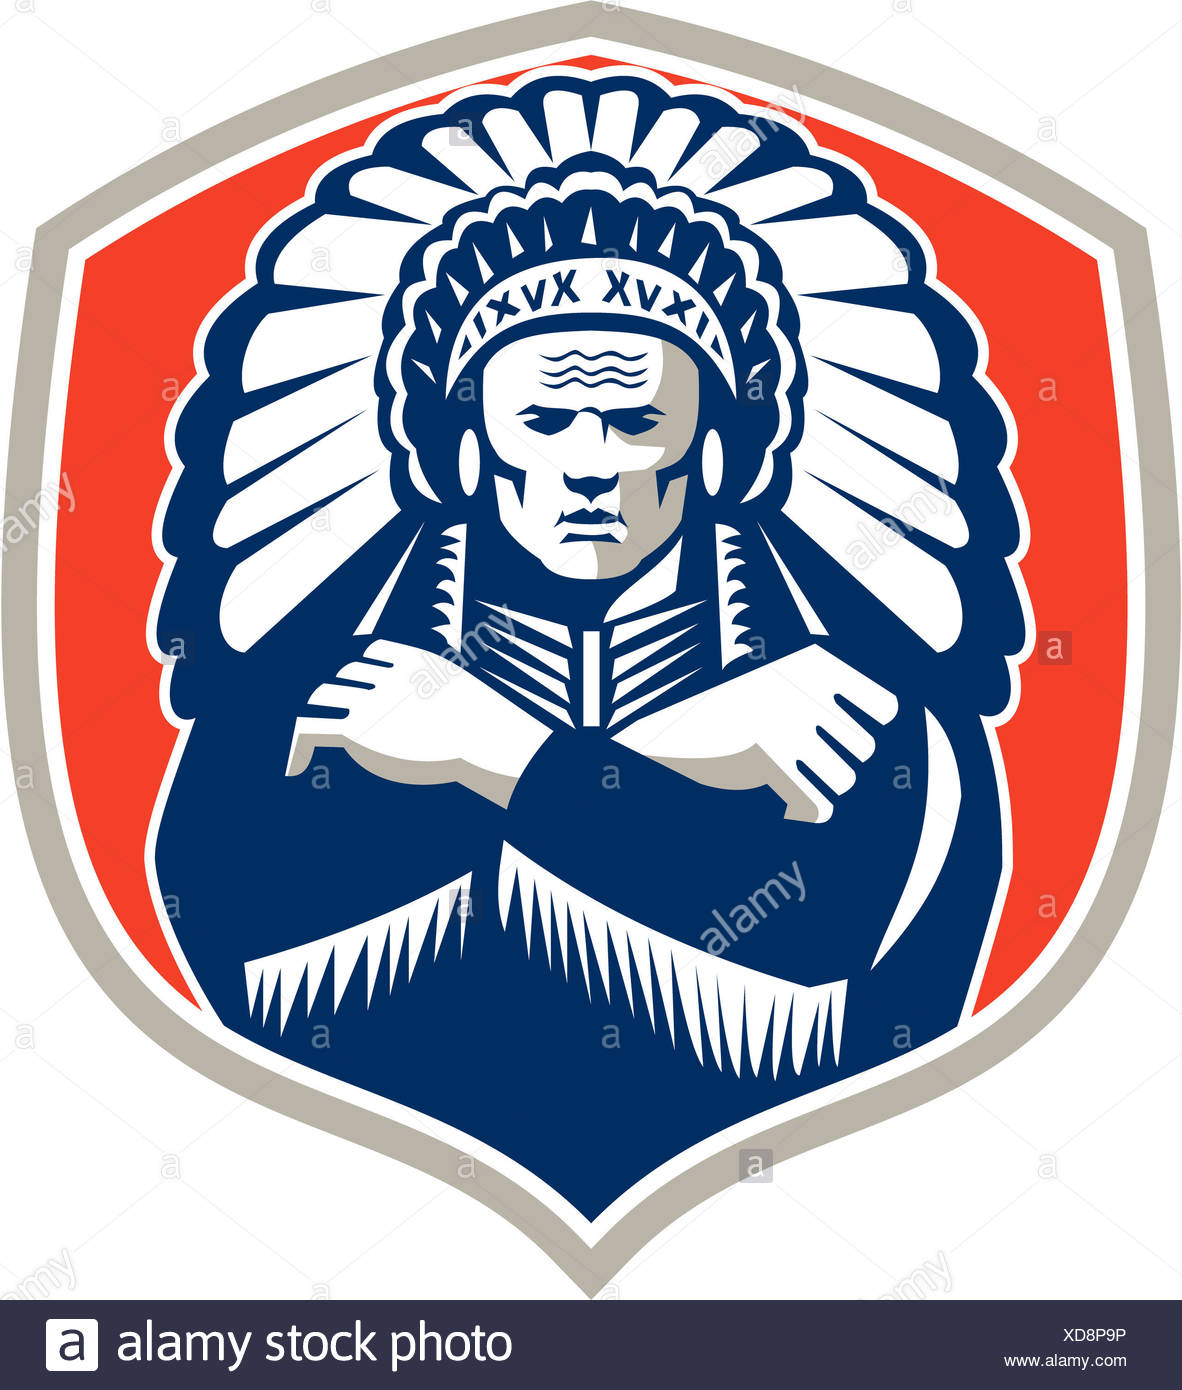 Illustration of a native american indian chief warrior wearing feathers headdress viewed from front set inside shield done in retro style on isolated background. - Stock Image